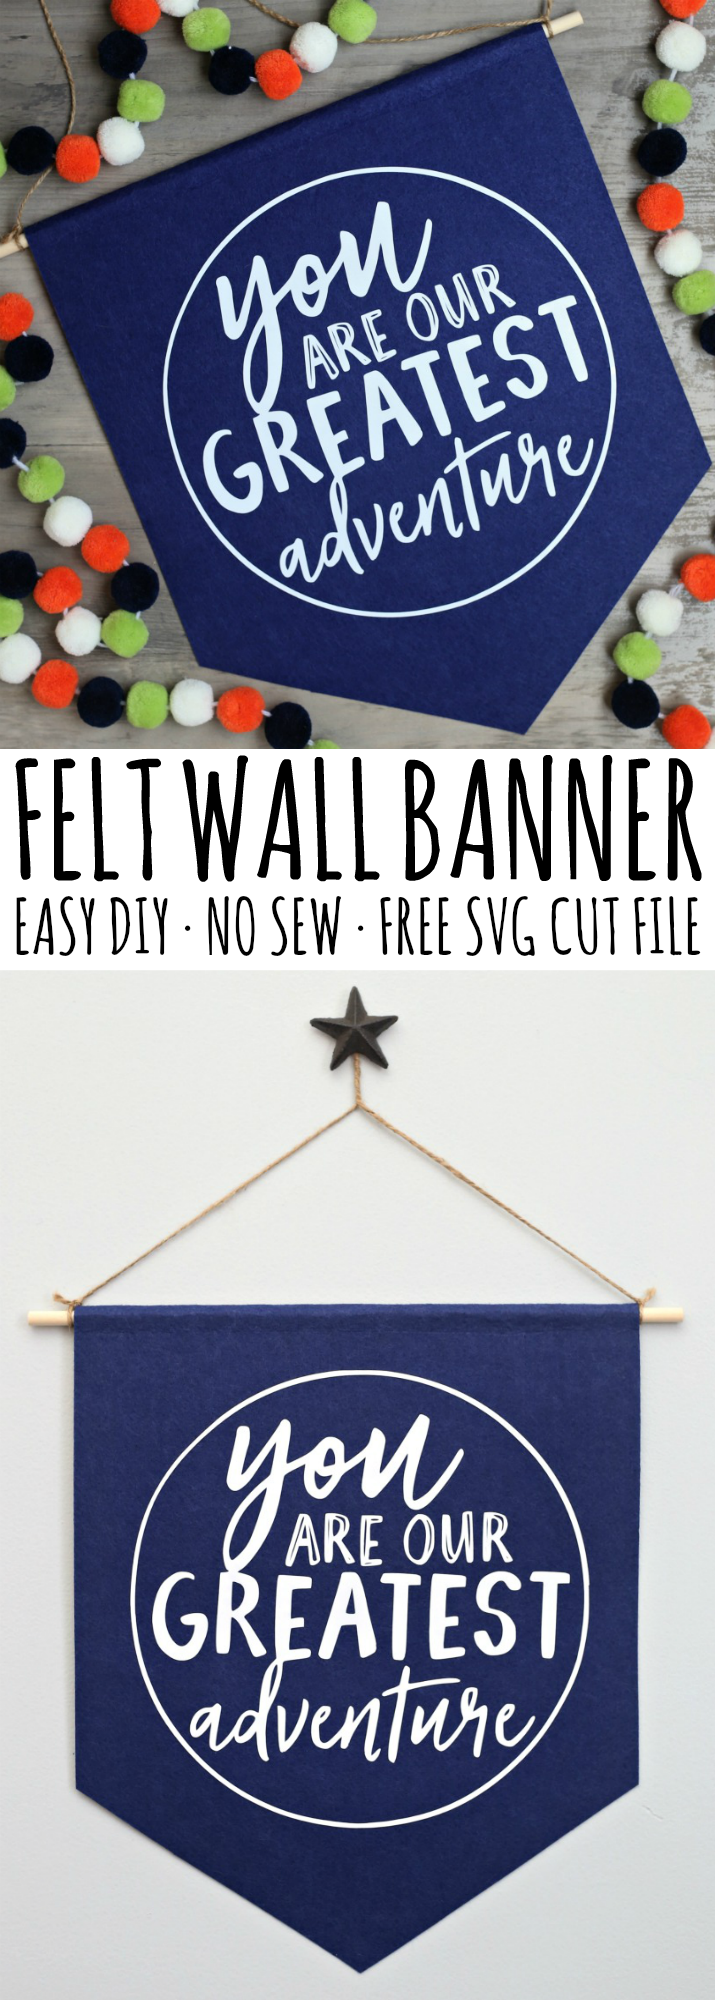 You are our Greatest Adventure Felt Wall Banner